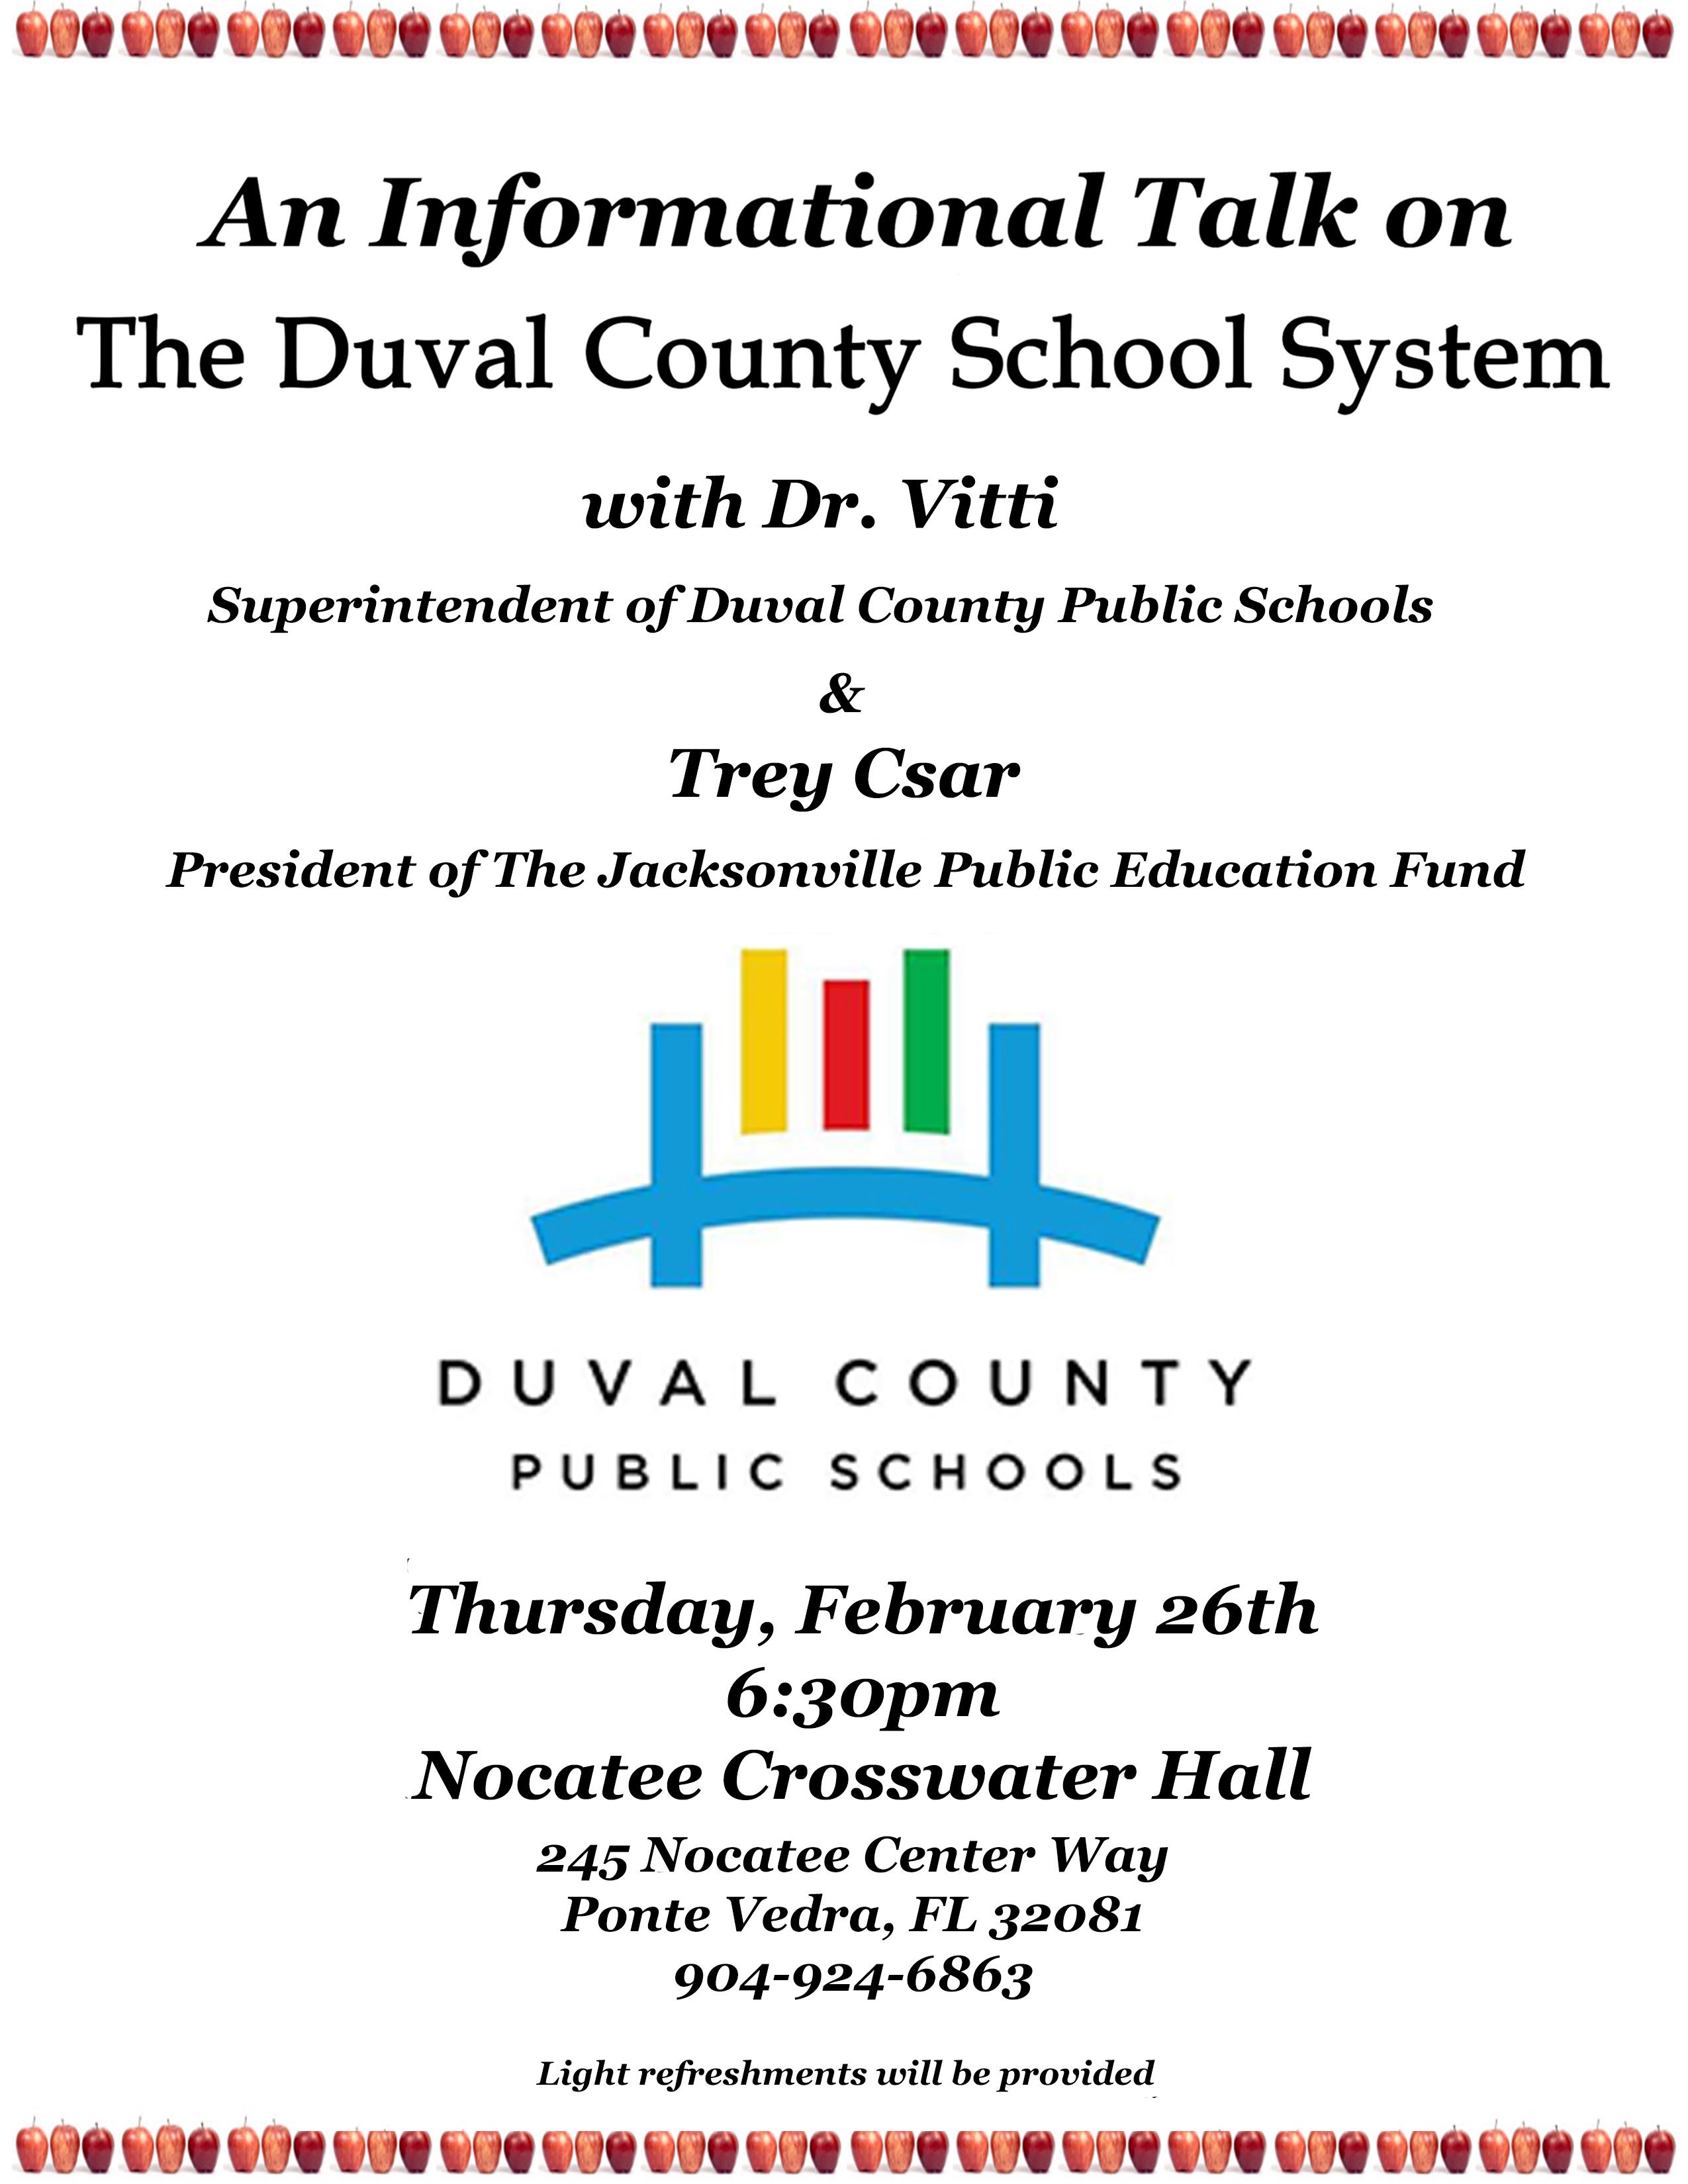 Informational Talk on Duval County School System at Nocatee